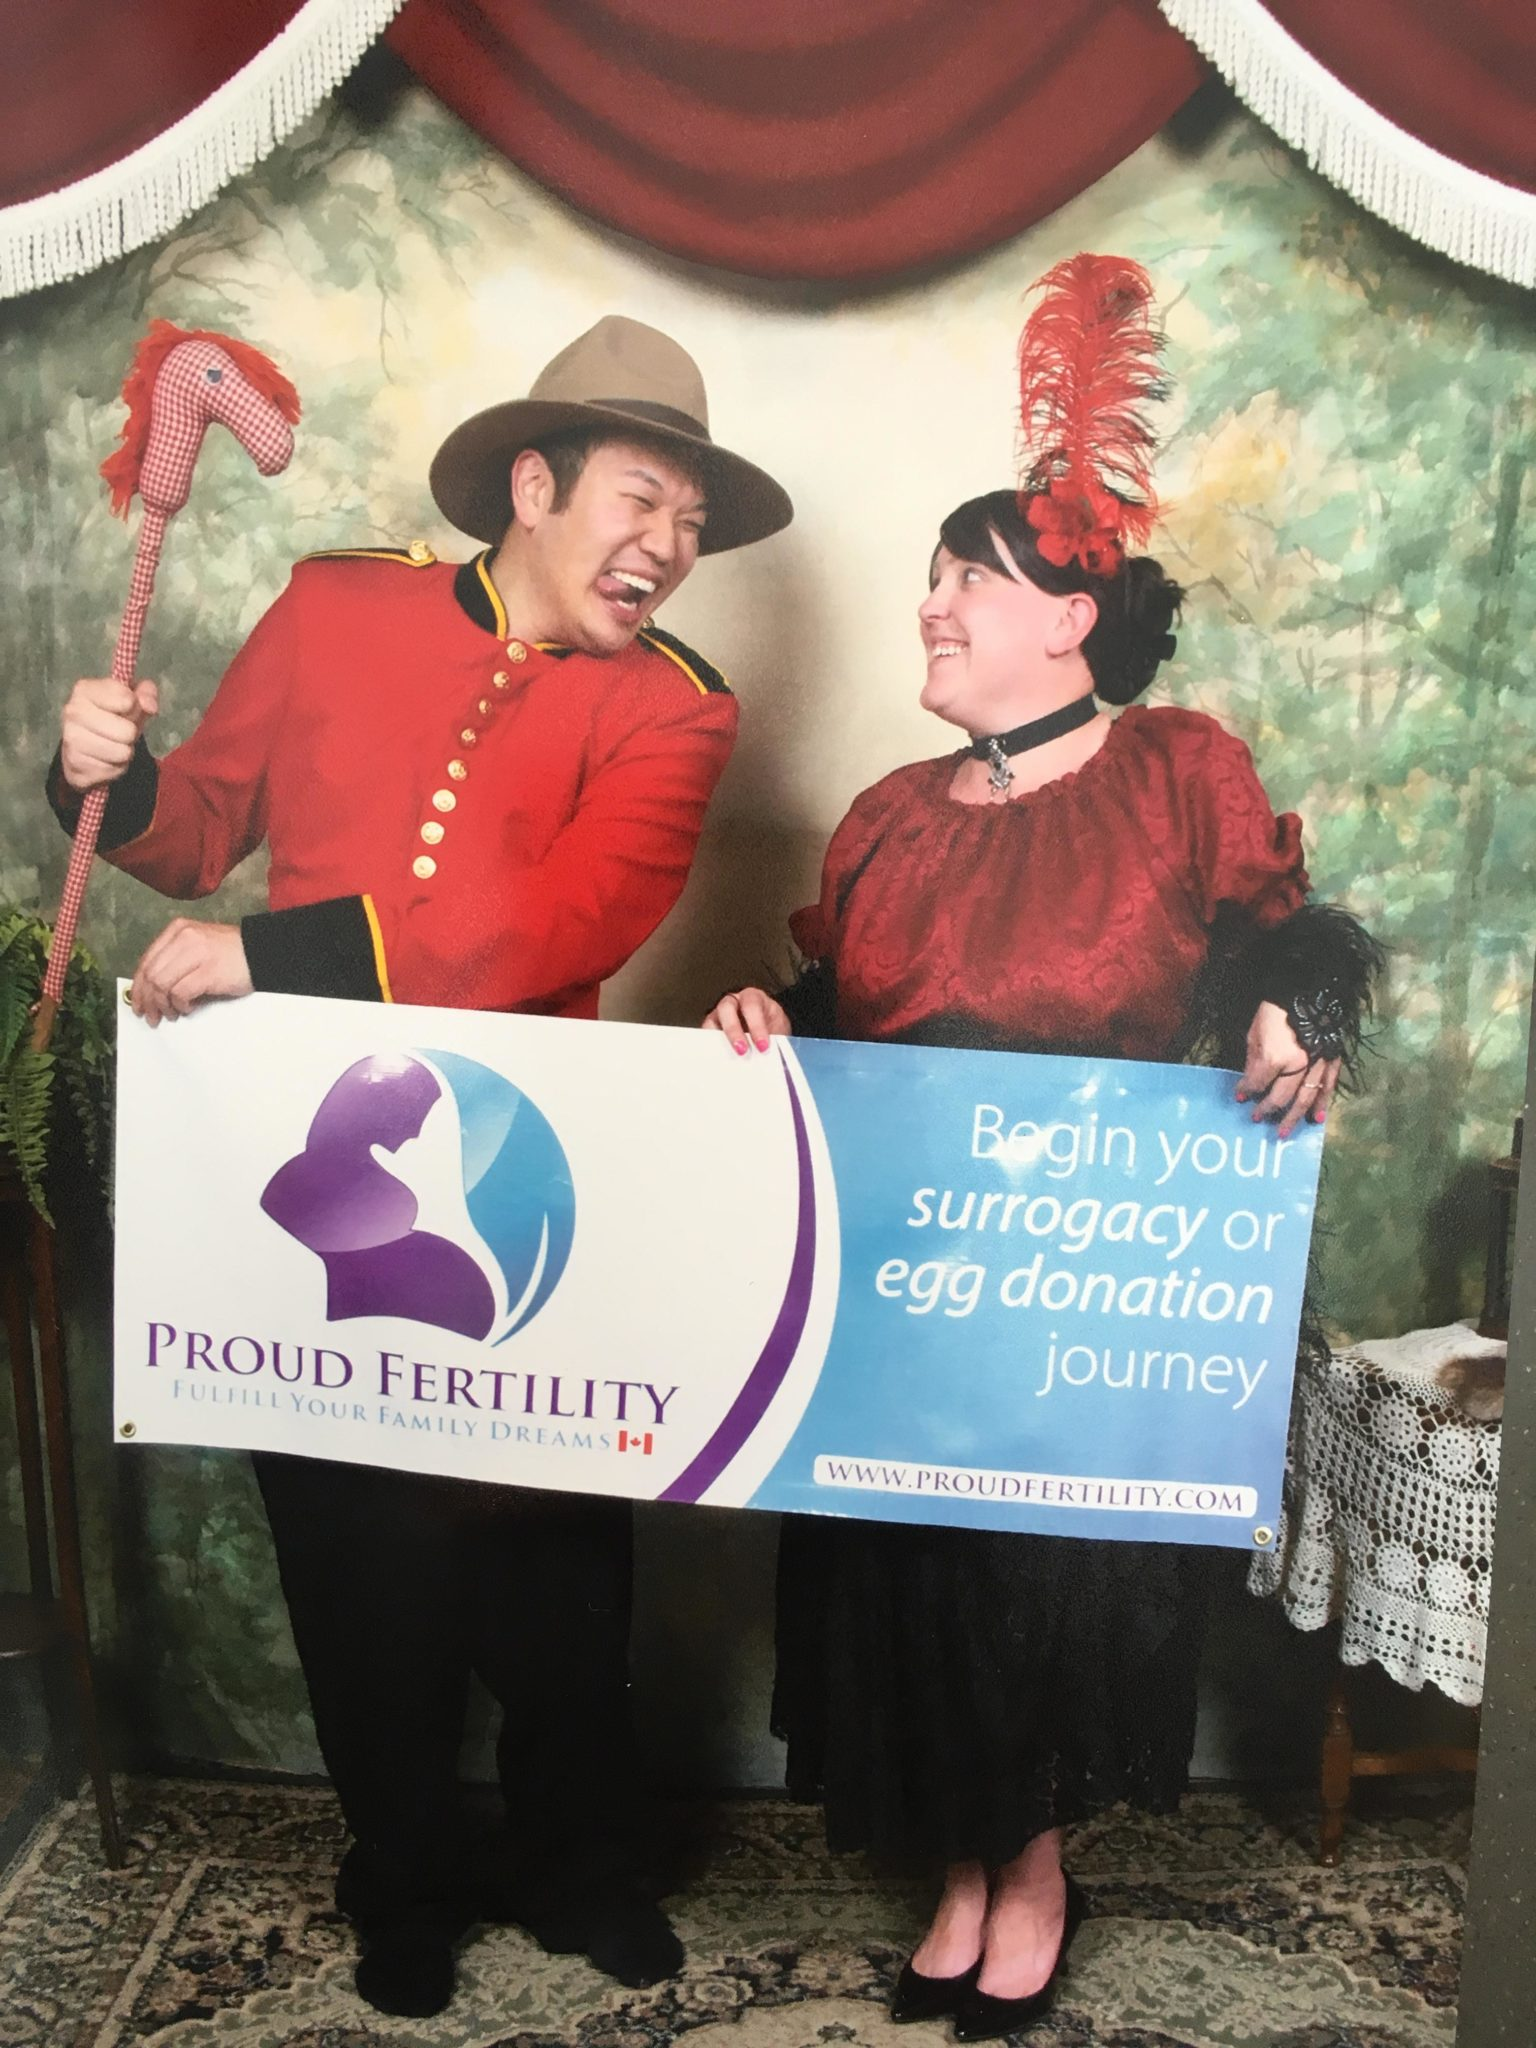 Surrogate in Canada Paying it Forward After Infertility